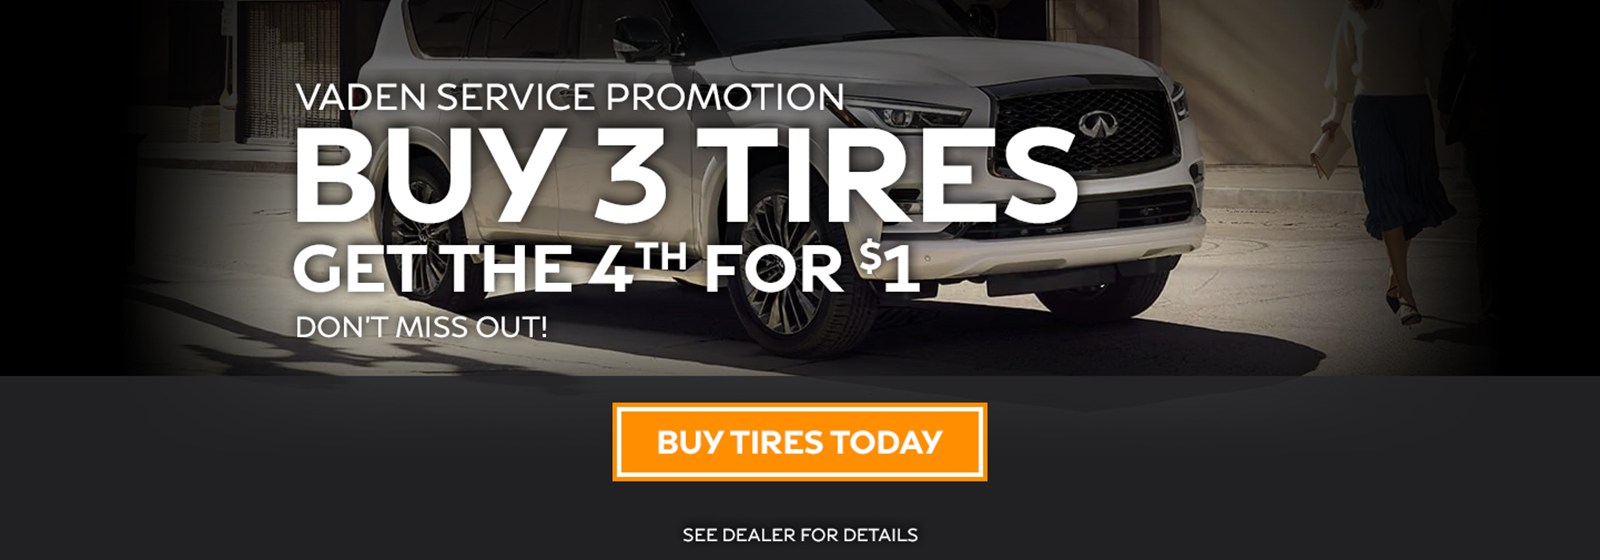 buy three tires and get the fourth for one dollar